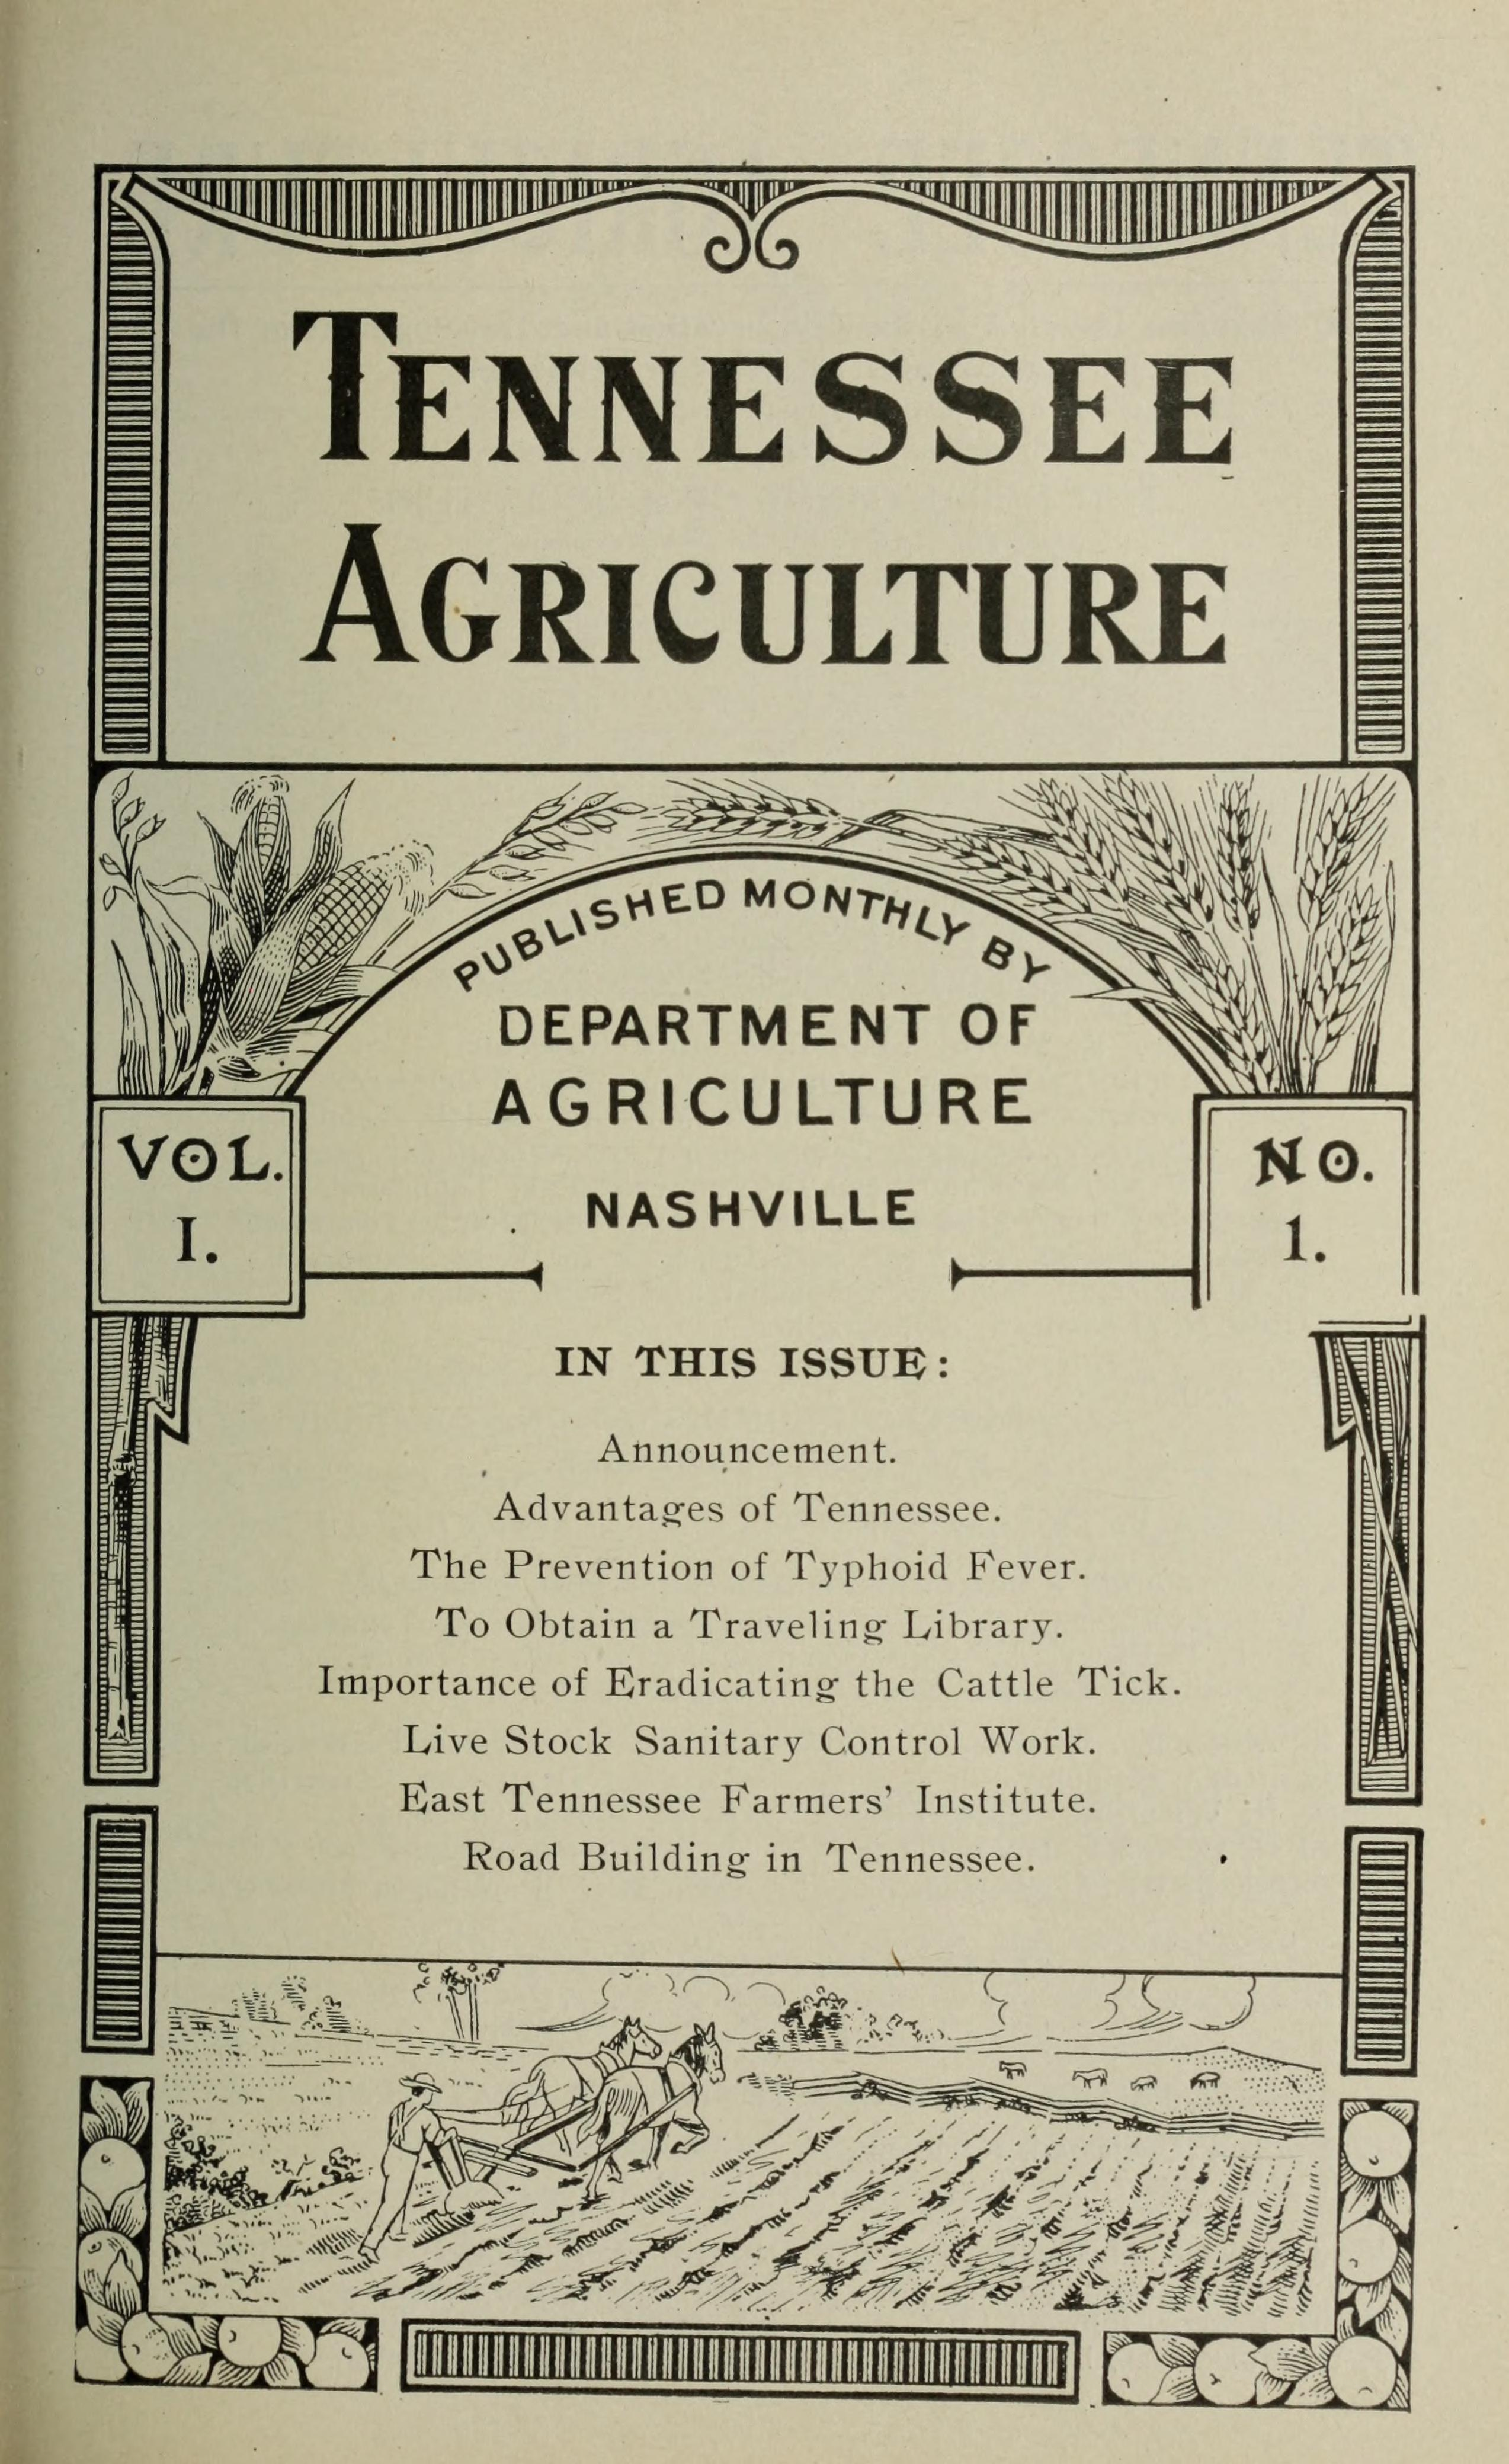 File:Biennial report of the Department of Agriculture (1911